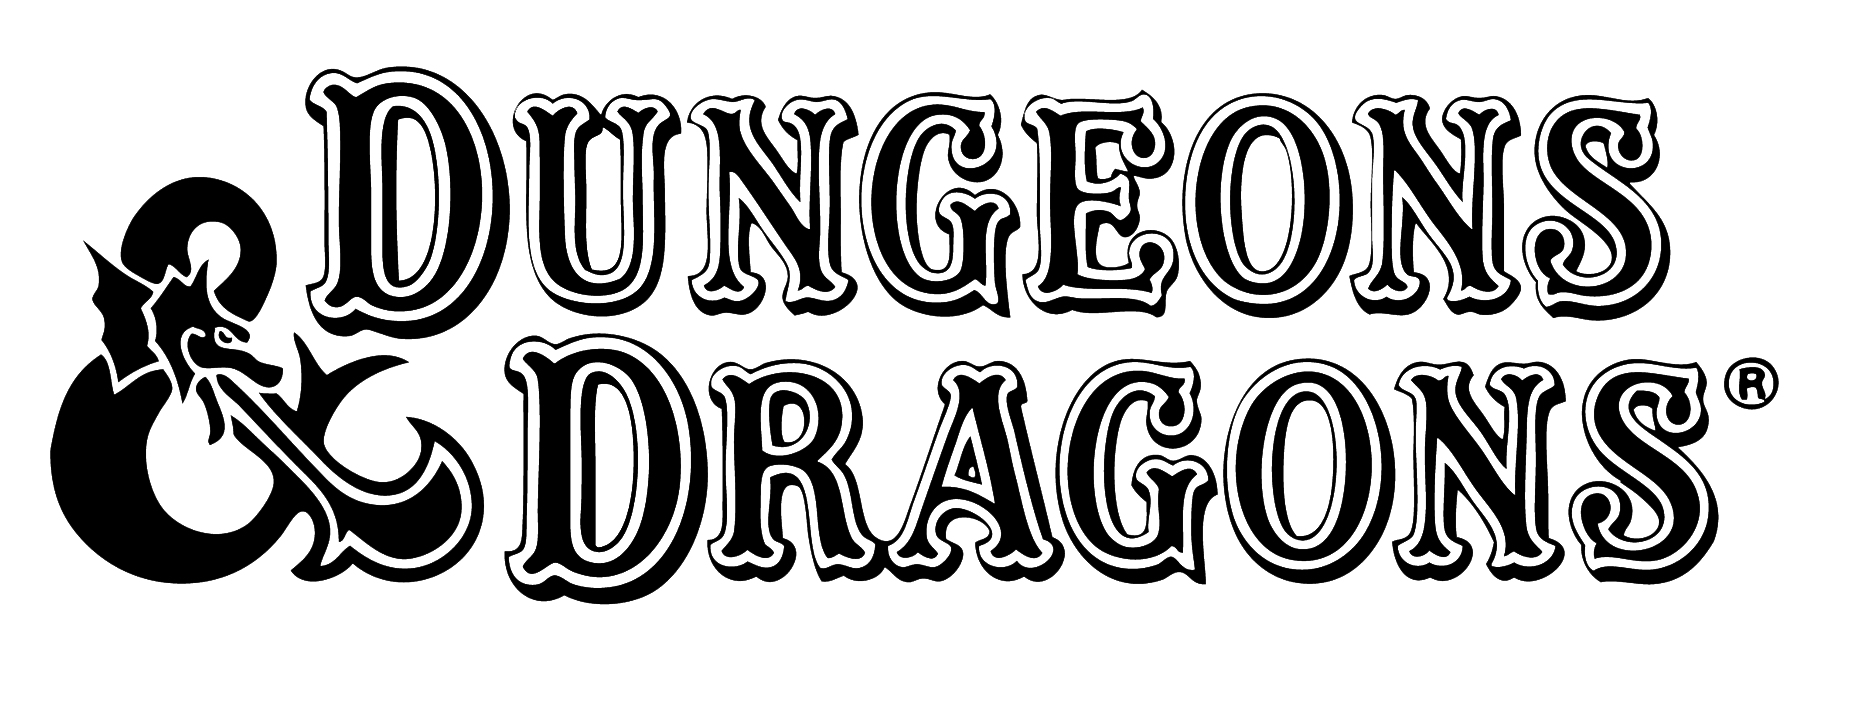 Pin By Erika Finbraaten On D D Dungeons And Dragons Dungeon Dragon